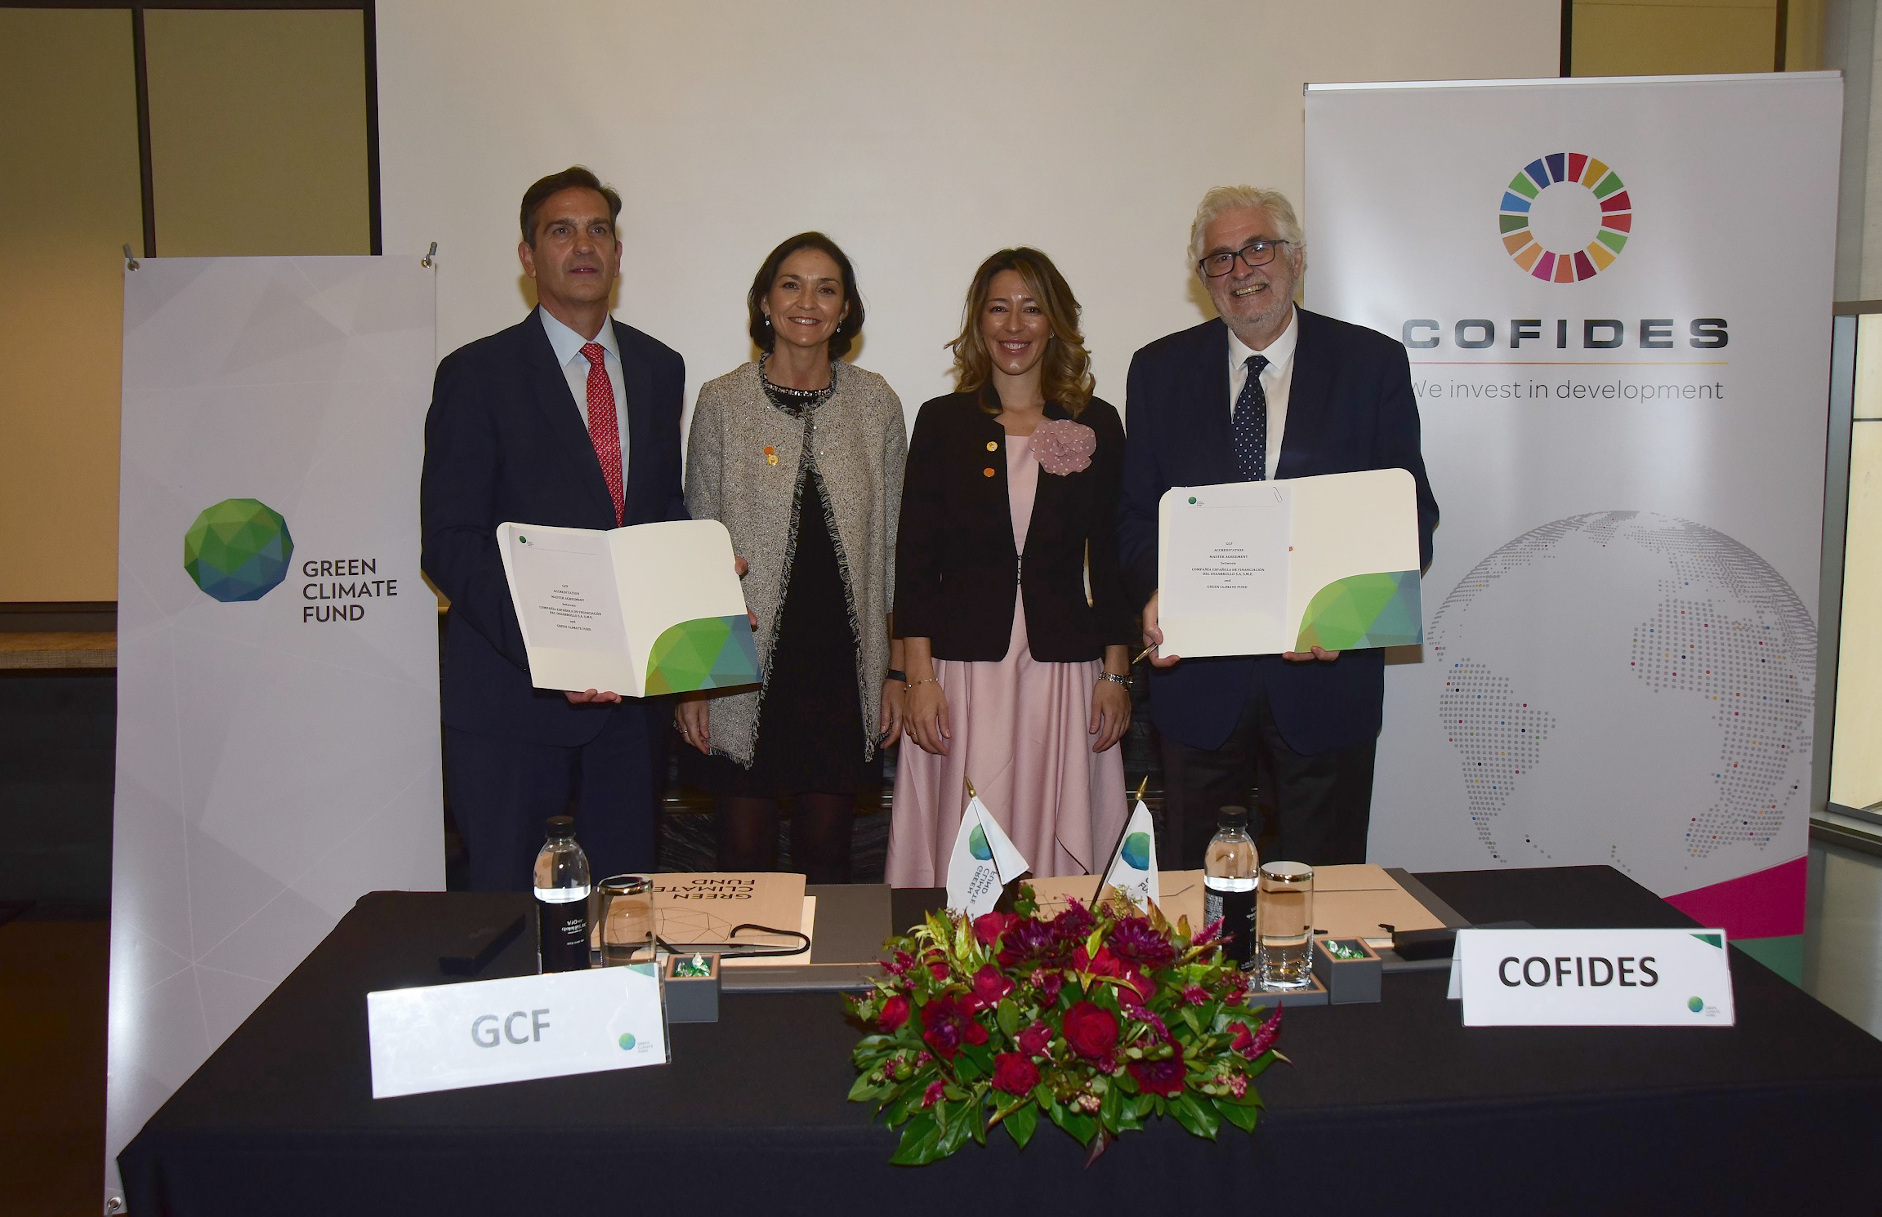 Image of the participants in the signing of the COFIDES Accreditation Master Agreement with the Green Climate Fund